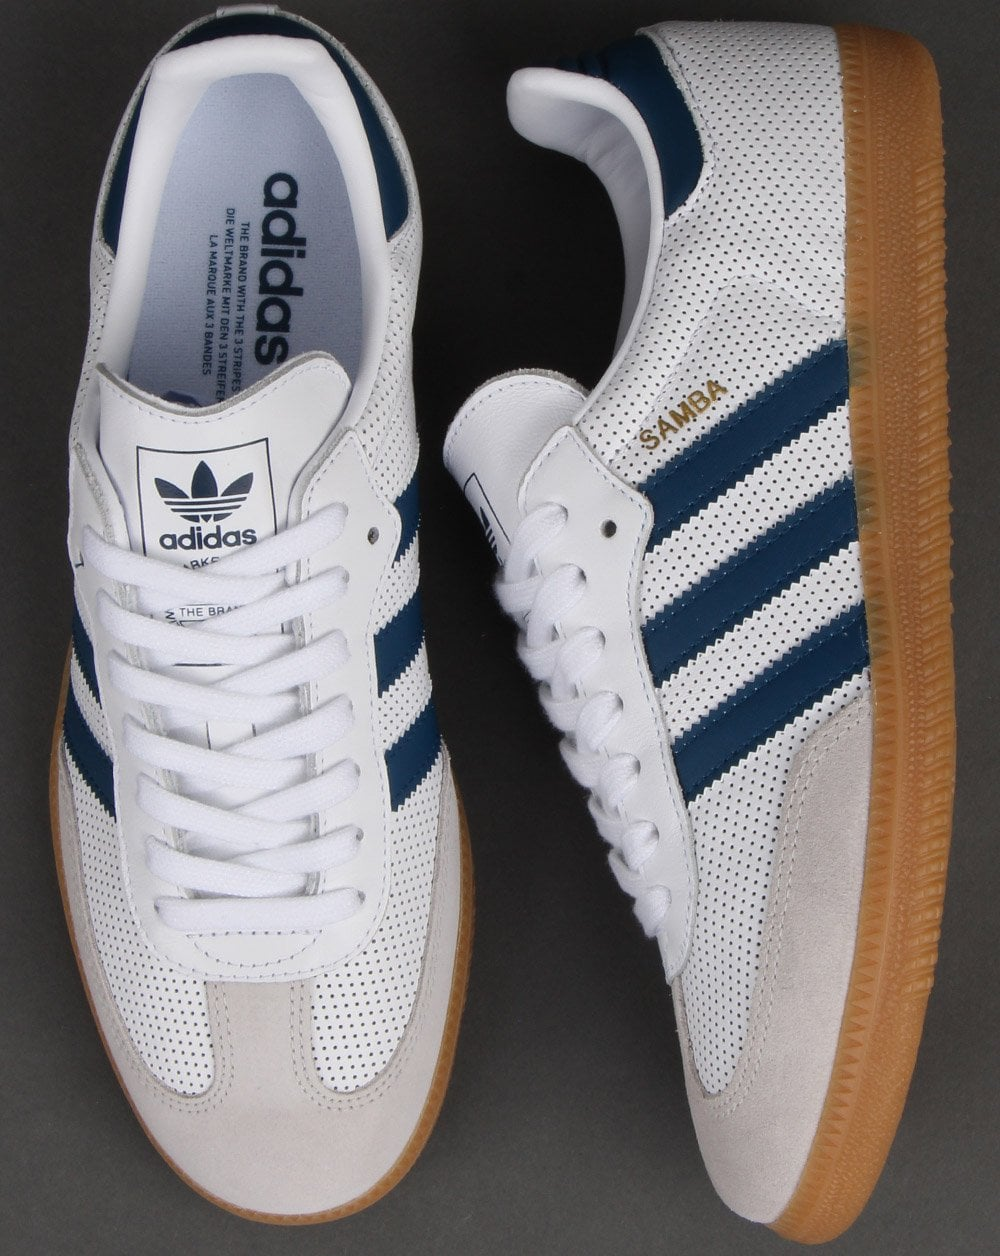 country og adidas 64% di sconto sglabs.it